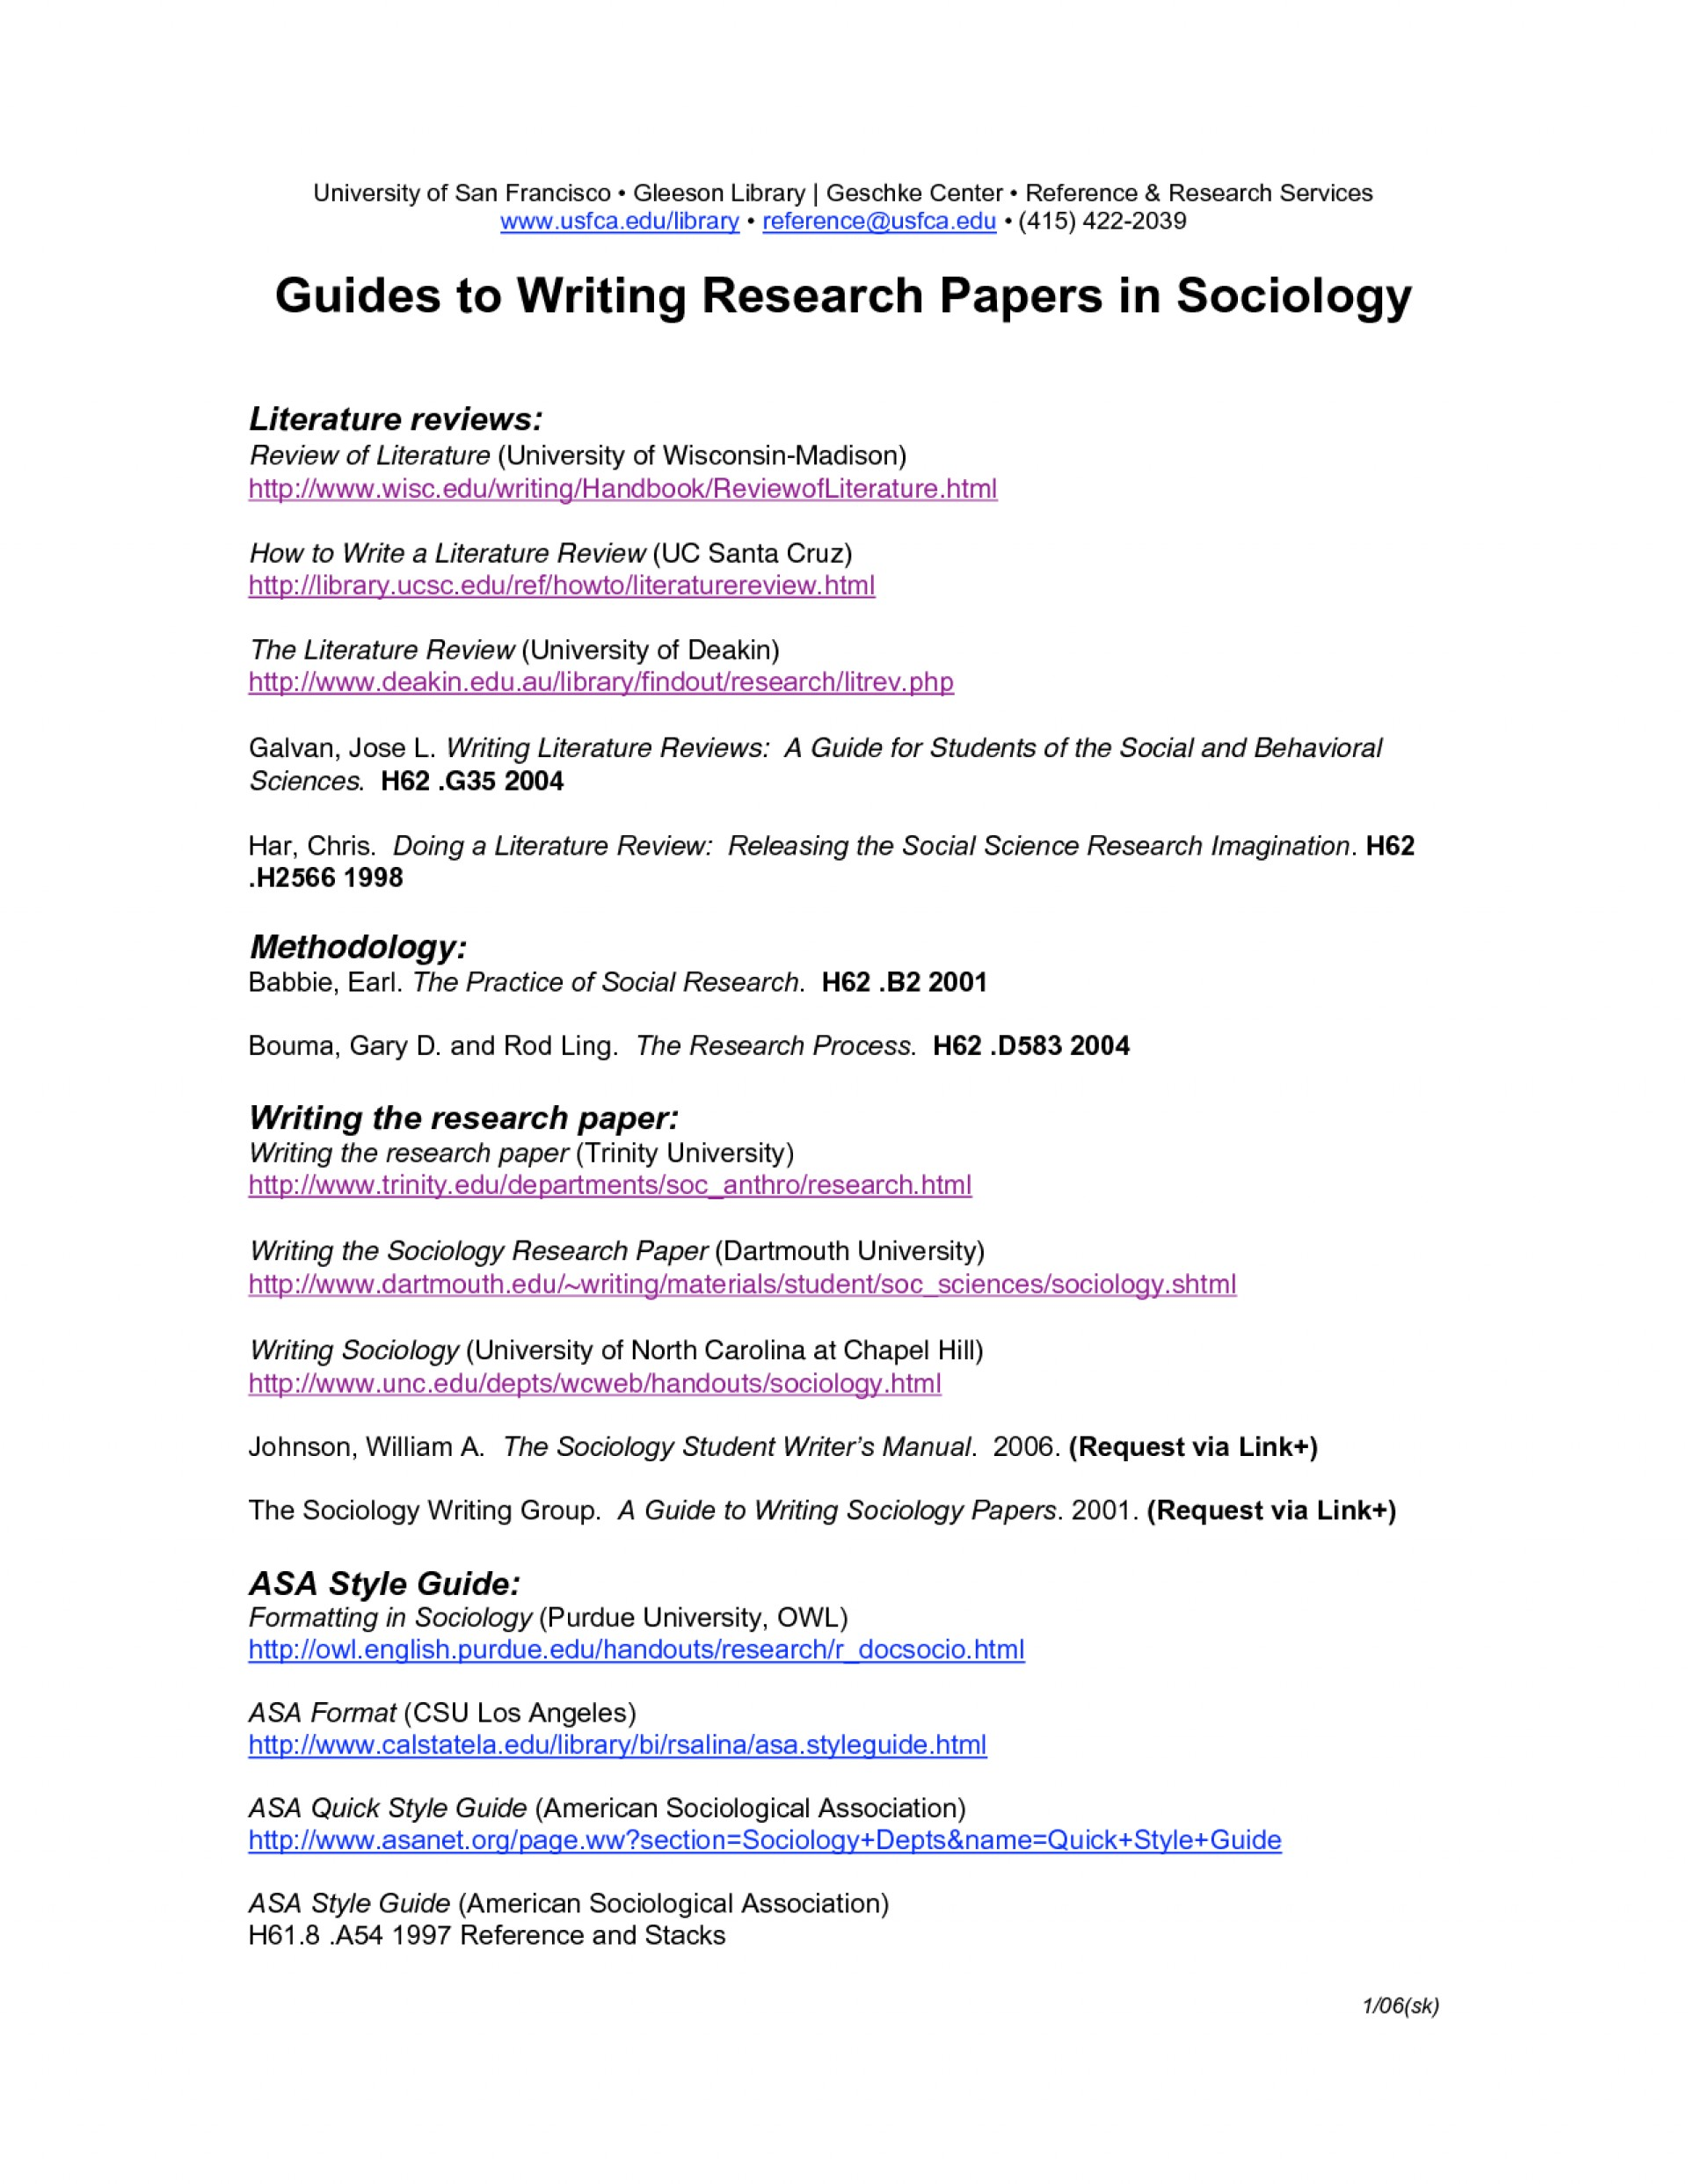 026 Asa Format Research Paper Example Sample For Sociology 135604 Singular 1920